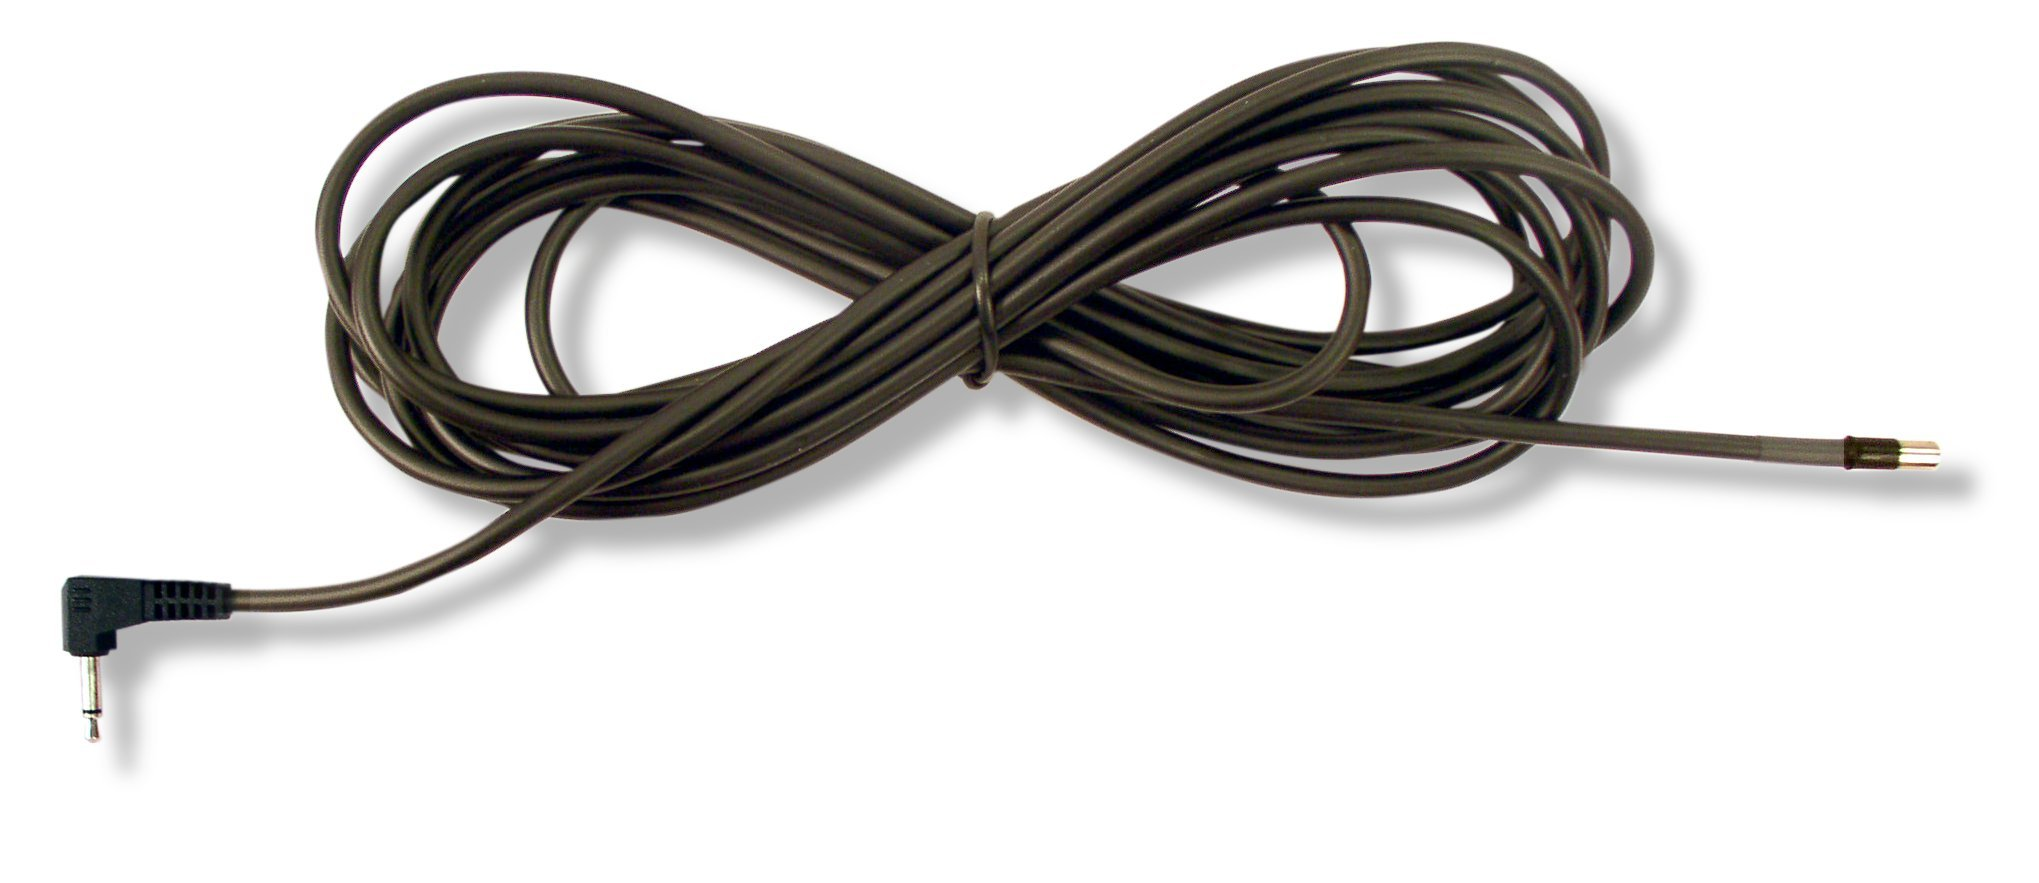 Cooper-Atkins 2010 Air Thermistor Probe with Extra-Long Cord Length, 0.5'' Shaft Length